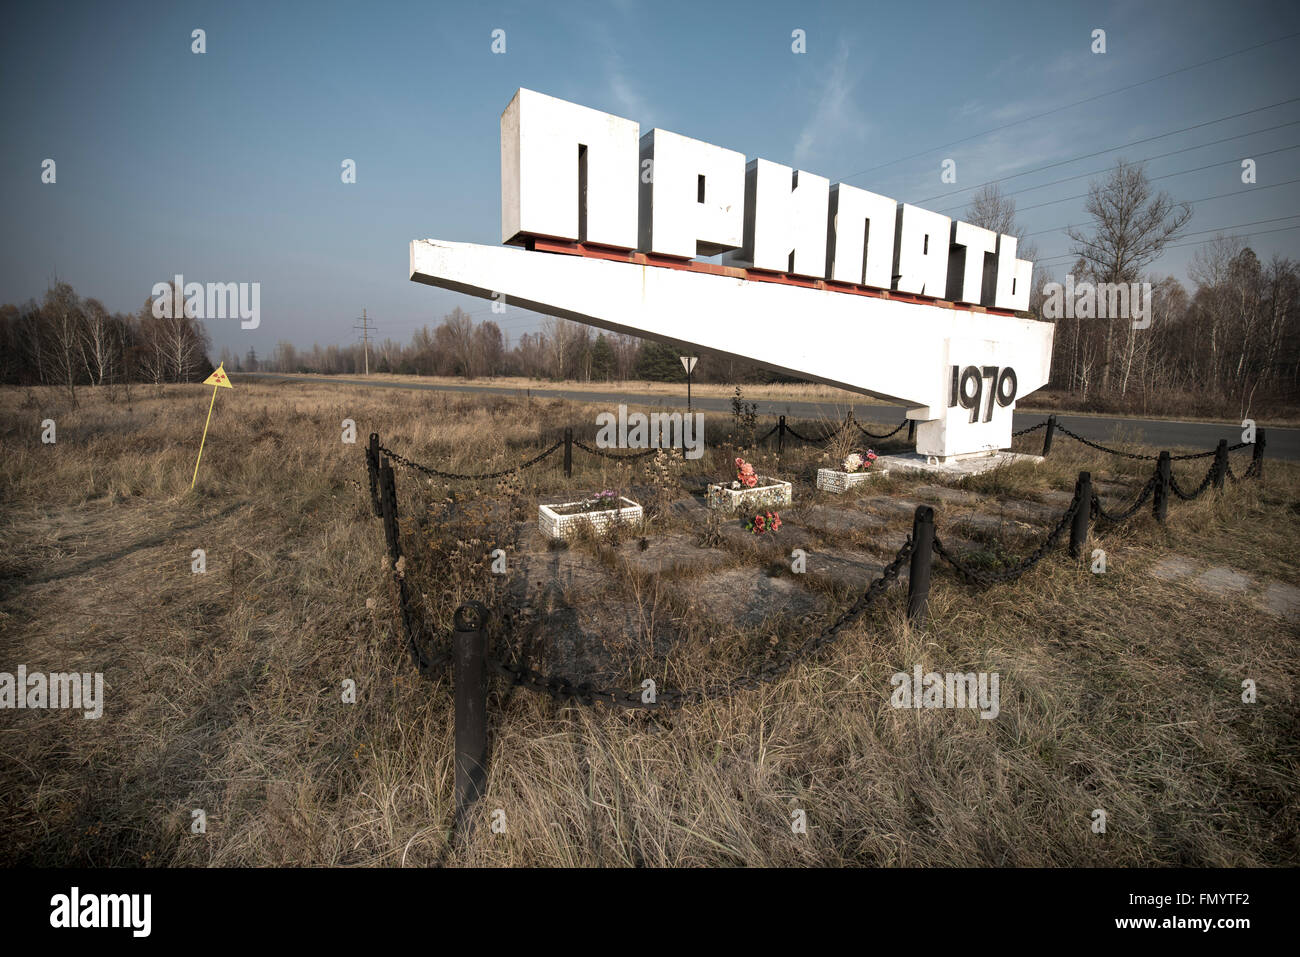 Welcome sign in Pripyat, Chernobyl scene of 1986 nuclear disaster - Stock Image